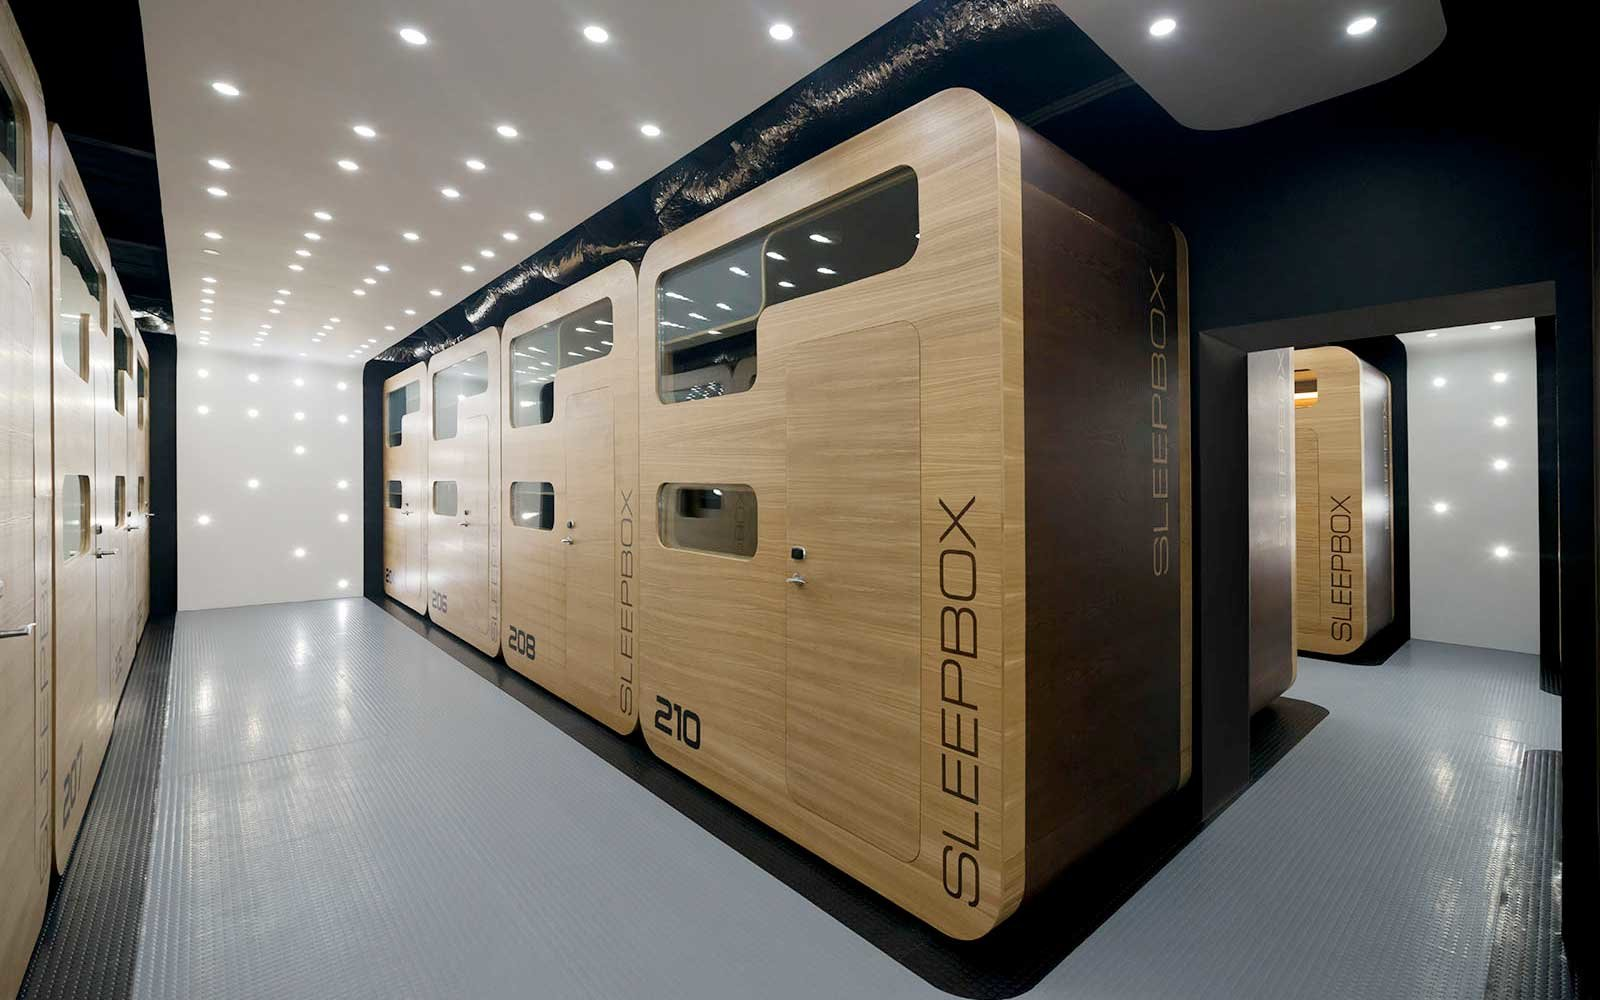 Box Room Beds Box Room: These Airport Nap Pods Are Like Tiny Hotel Rooms For Tired